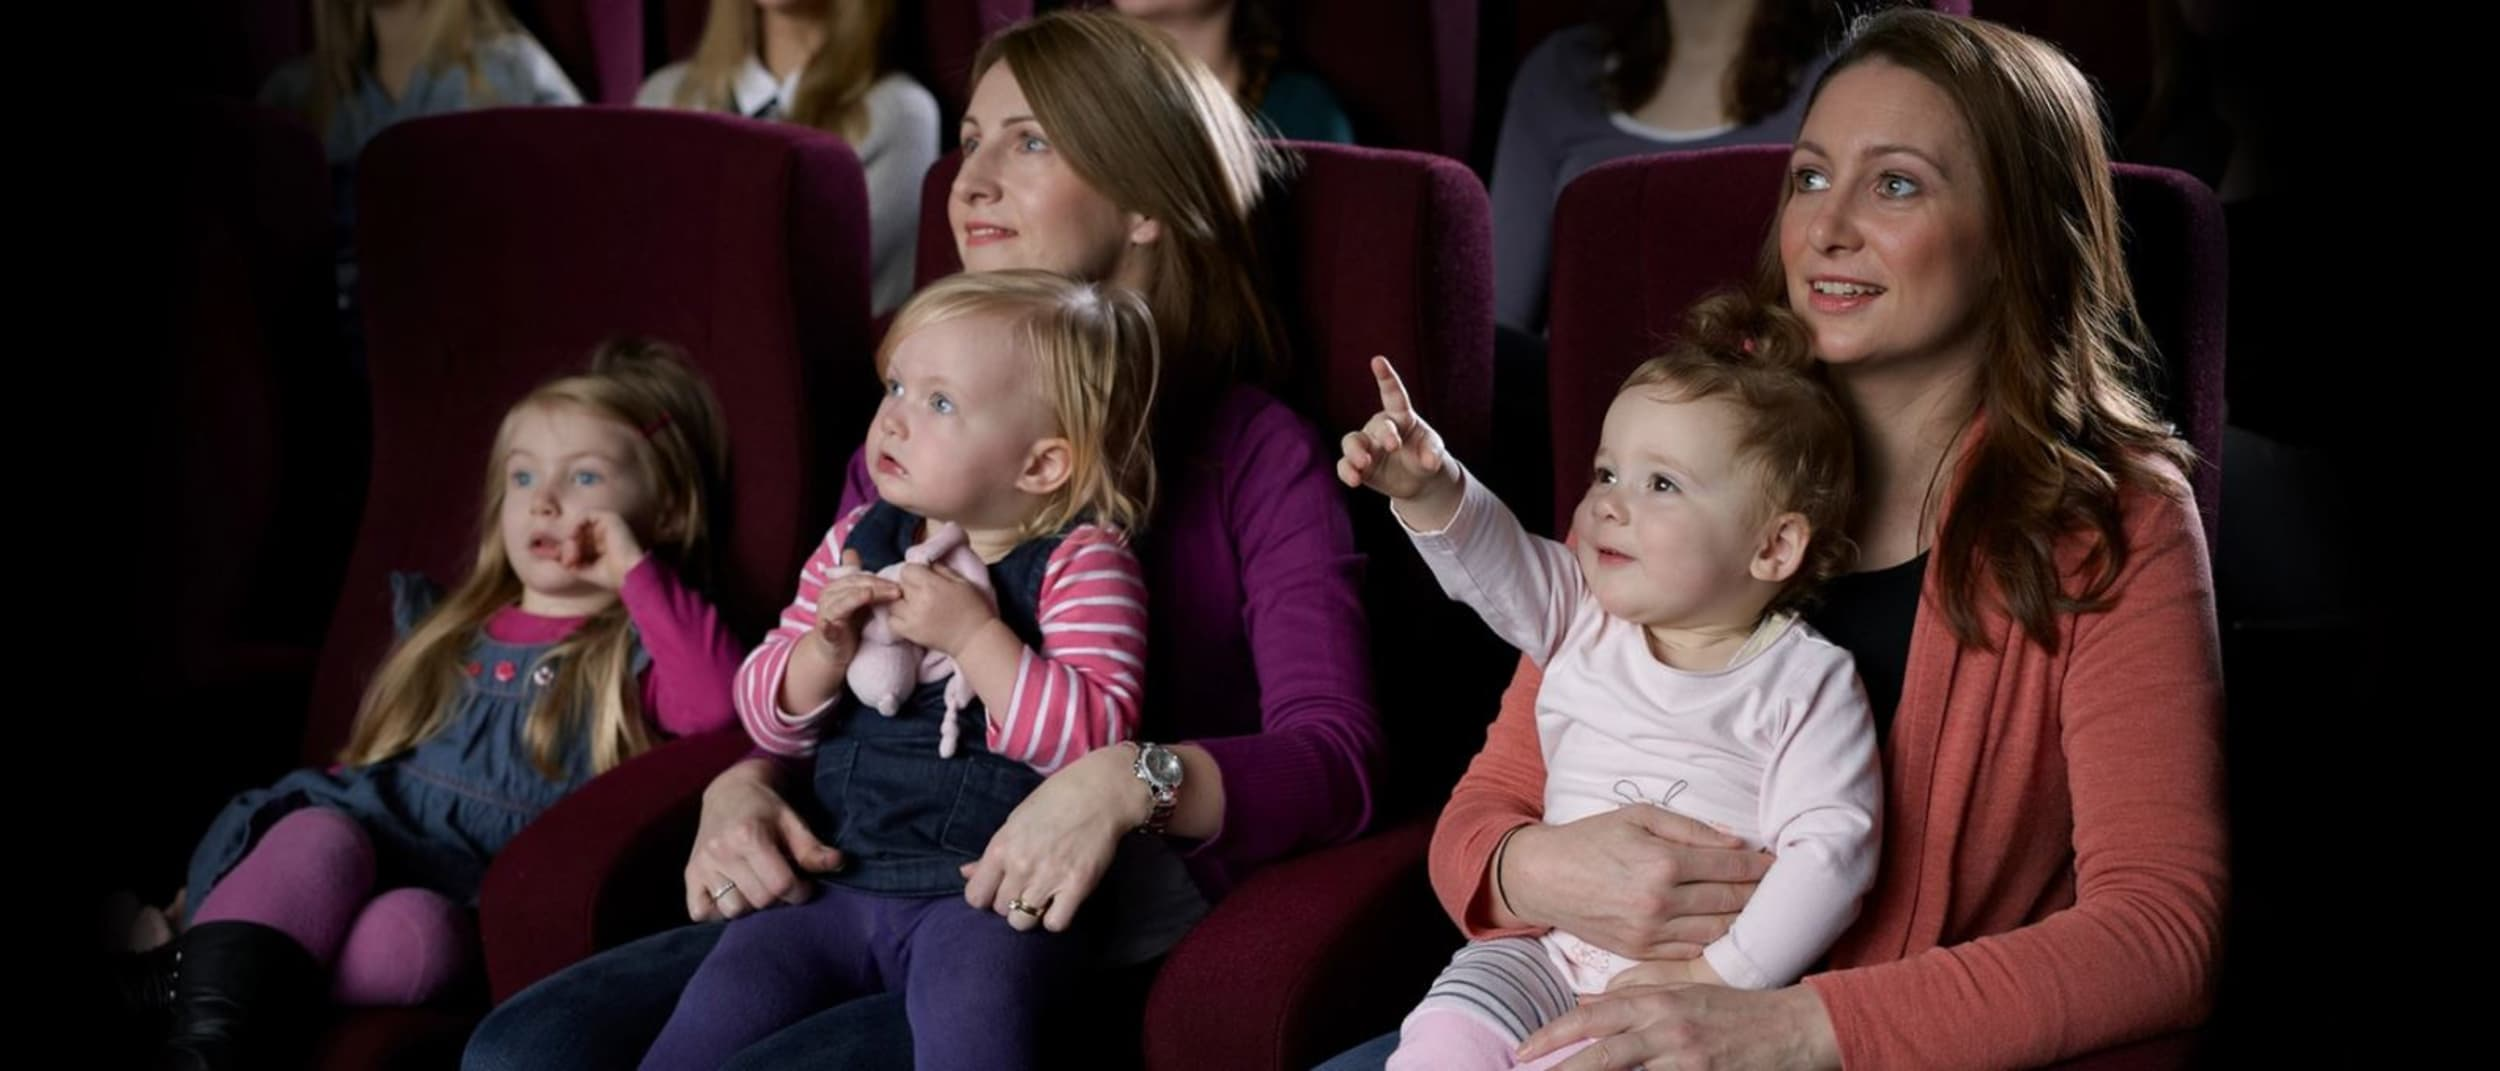 Event Cinemas: bring your baby